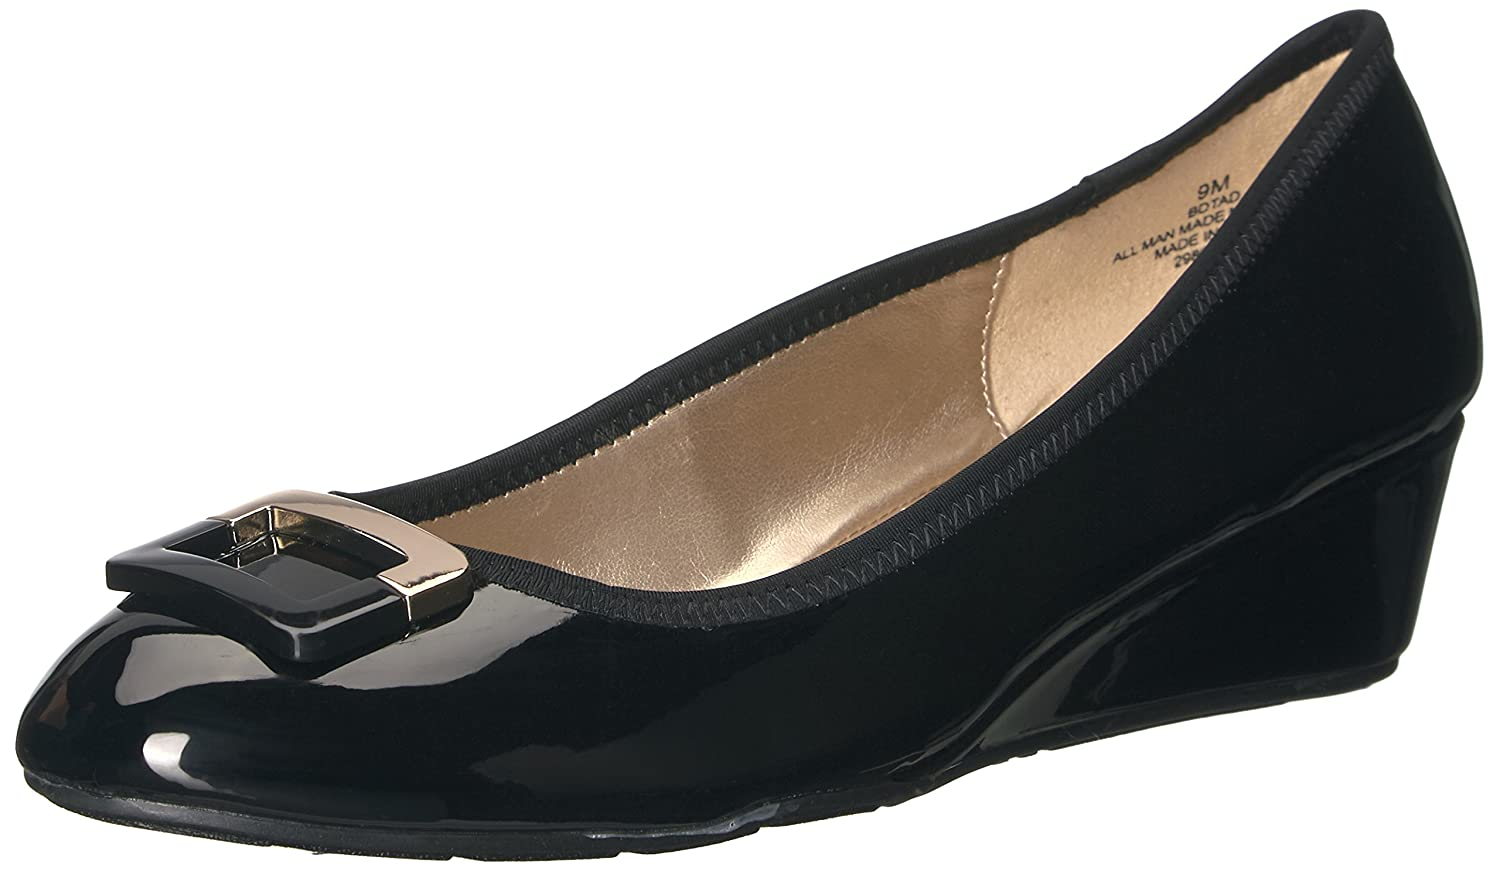 Bandolino Women's Tad Wedge Pump B01L10K87W 6.5 B(M) US|Black